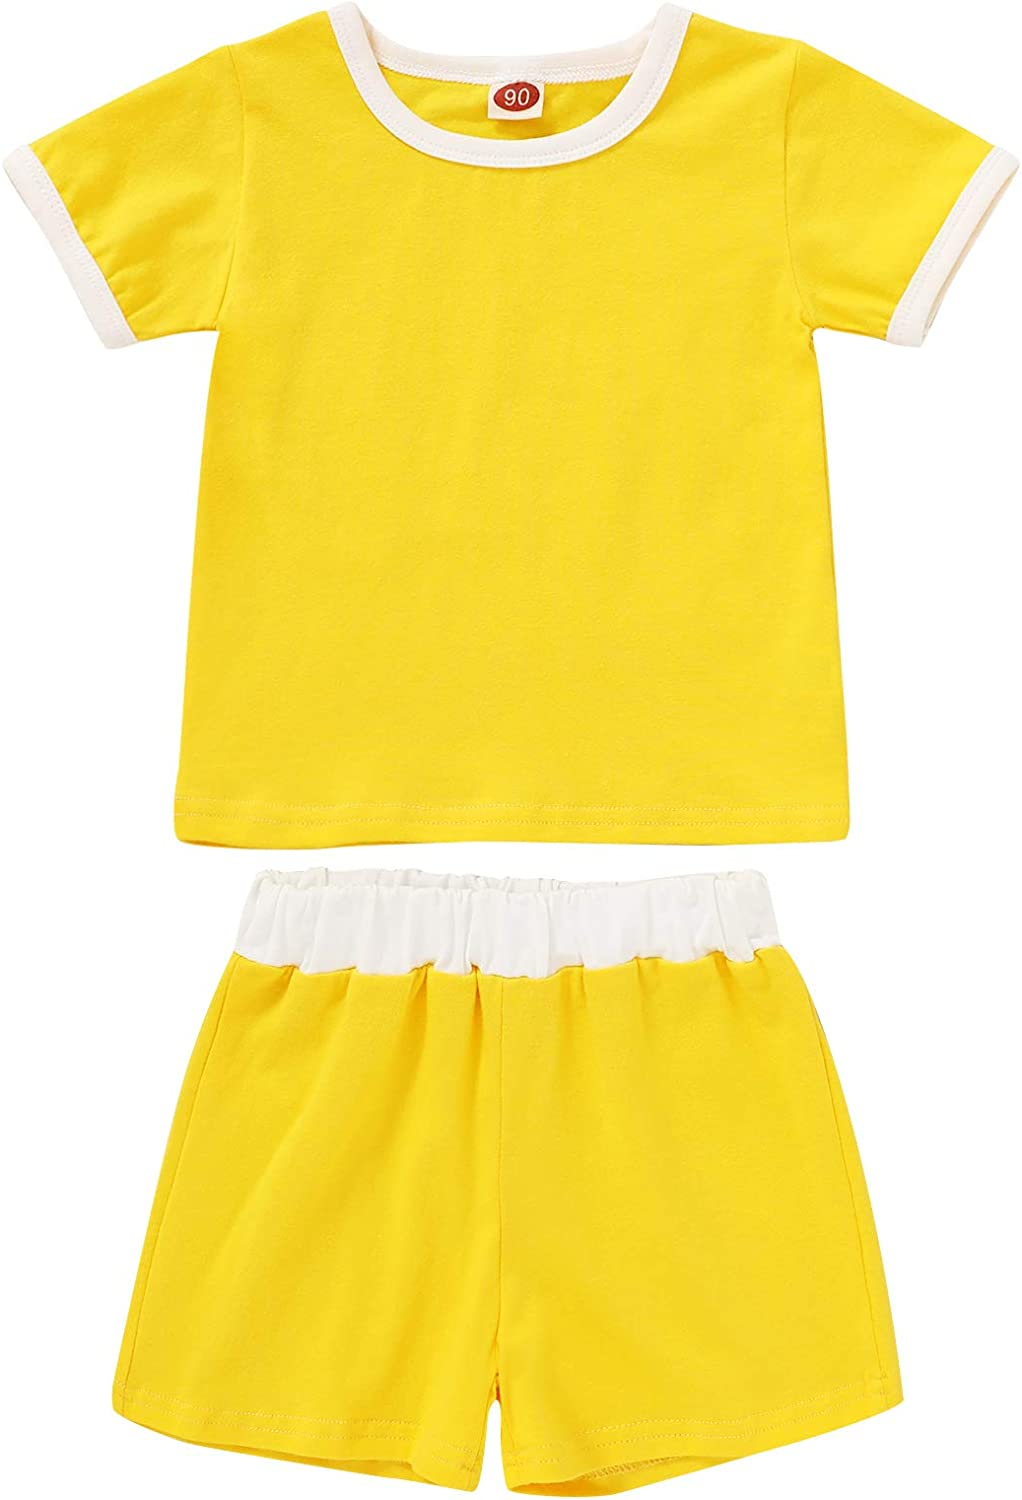 Toddler Baby Girl Boy Clothes Short Sleeve T-Shirt Tops and Shorts Set Solid Color Summer Outfit